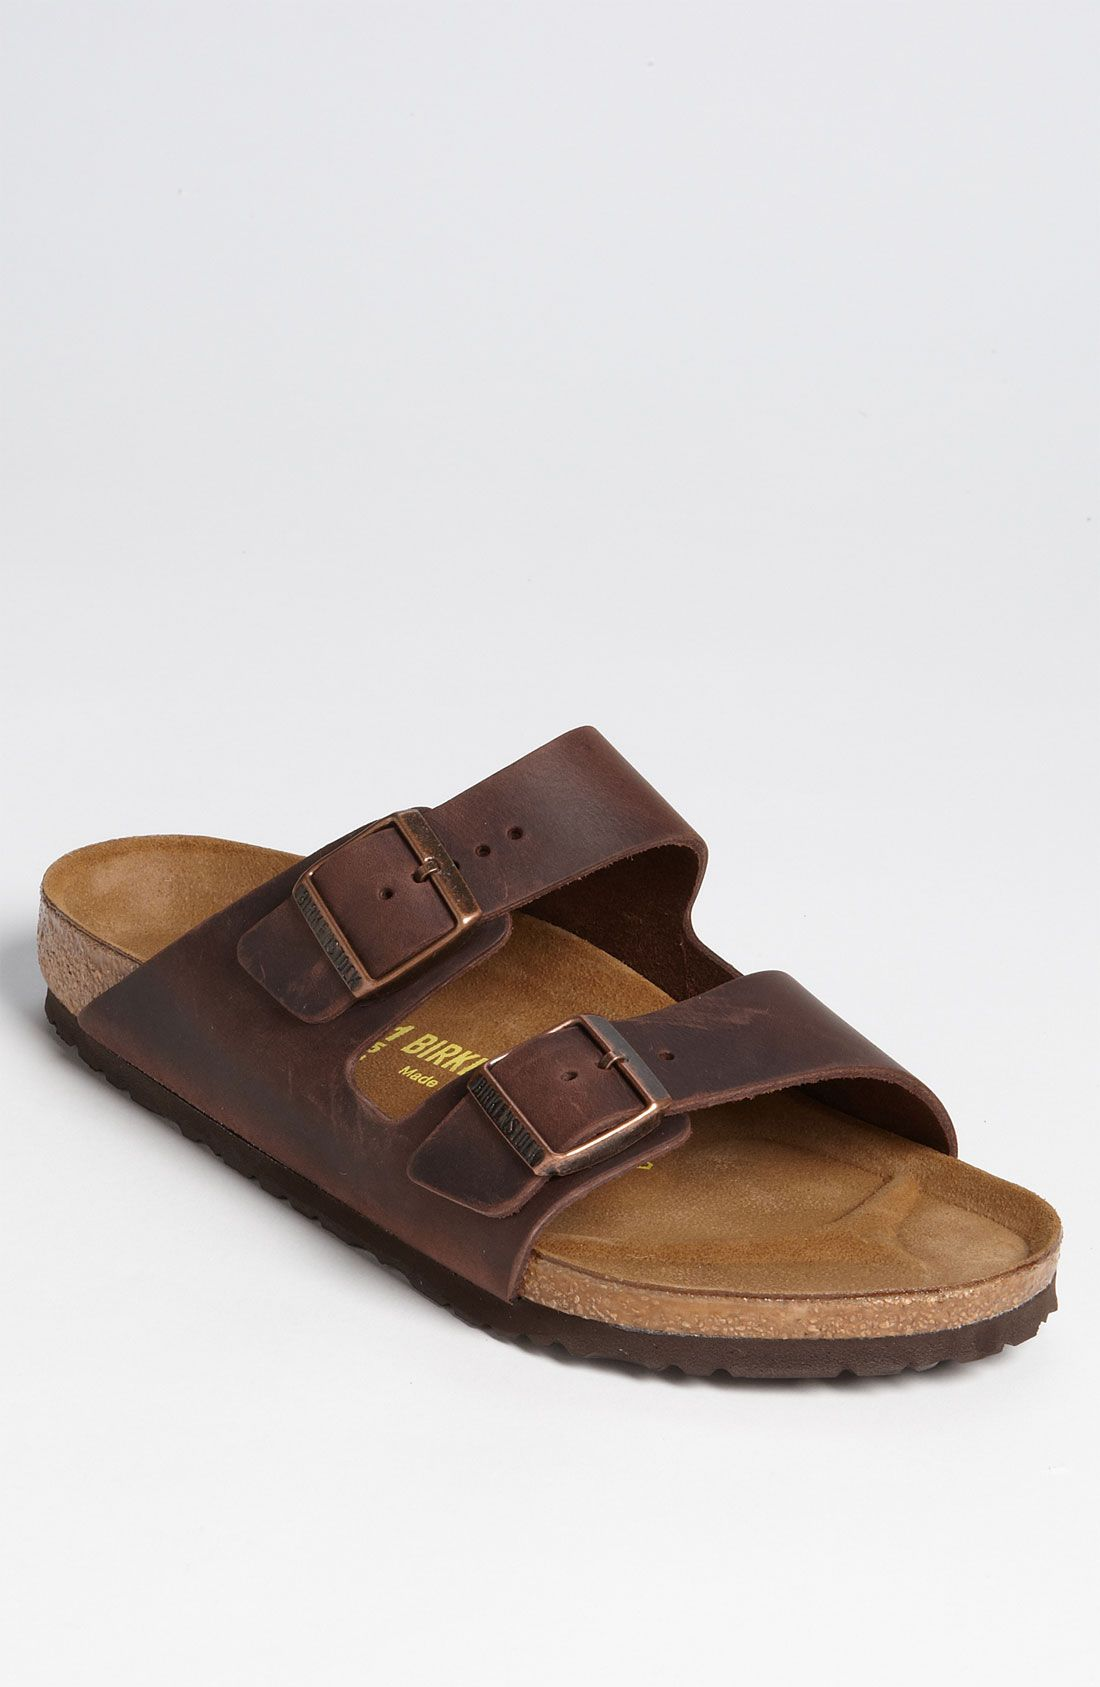 06399f0172 Birkenstock 'Arizona' Slide (Men)$124 | Sandals/Driving Shoes ...